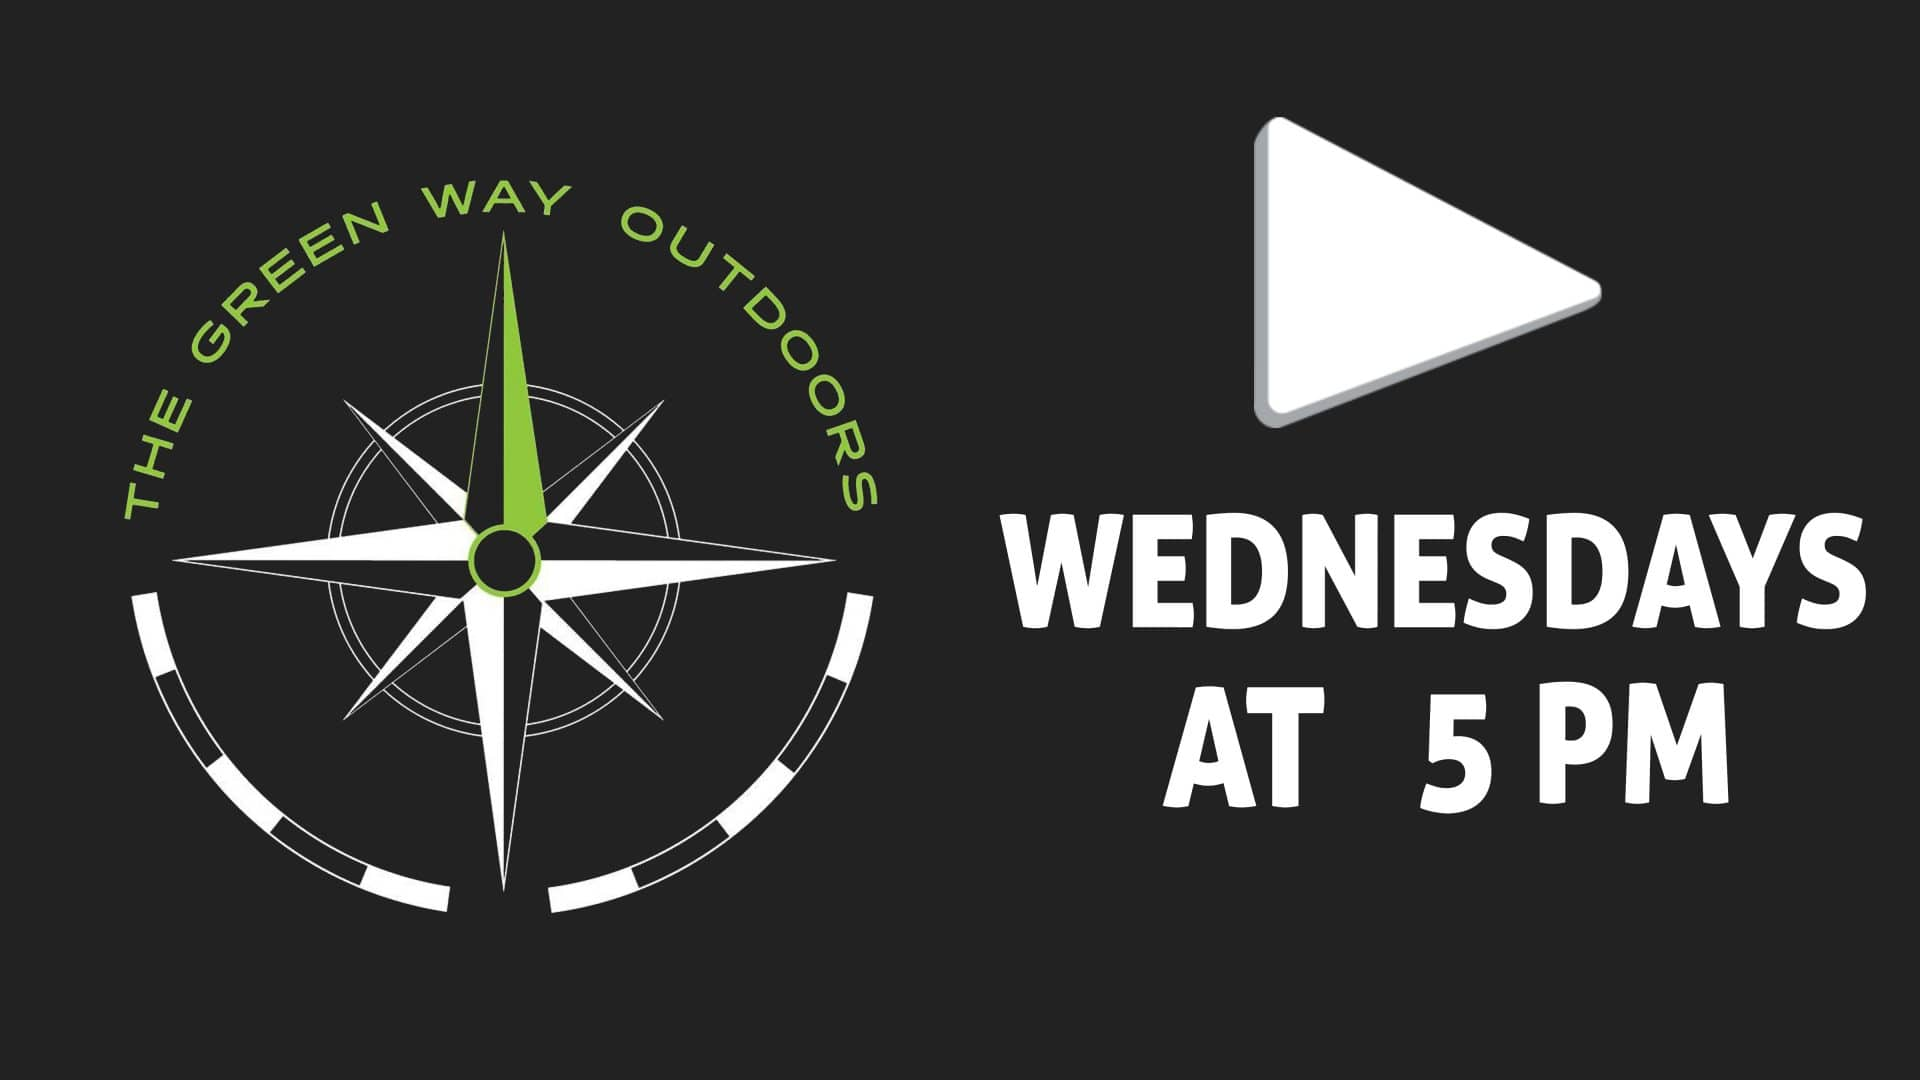 Watch Live - The Green Way Outdoors